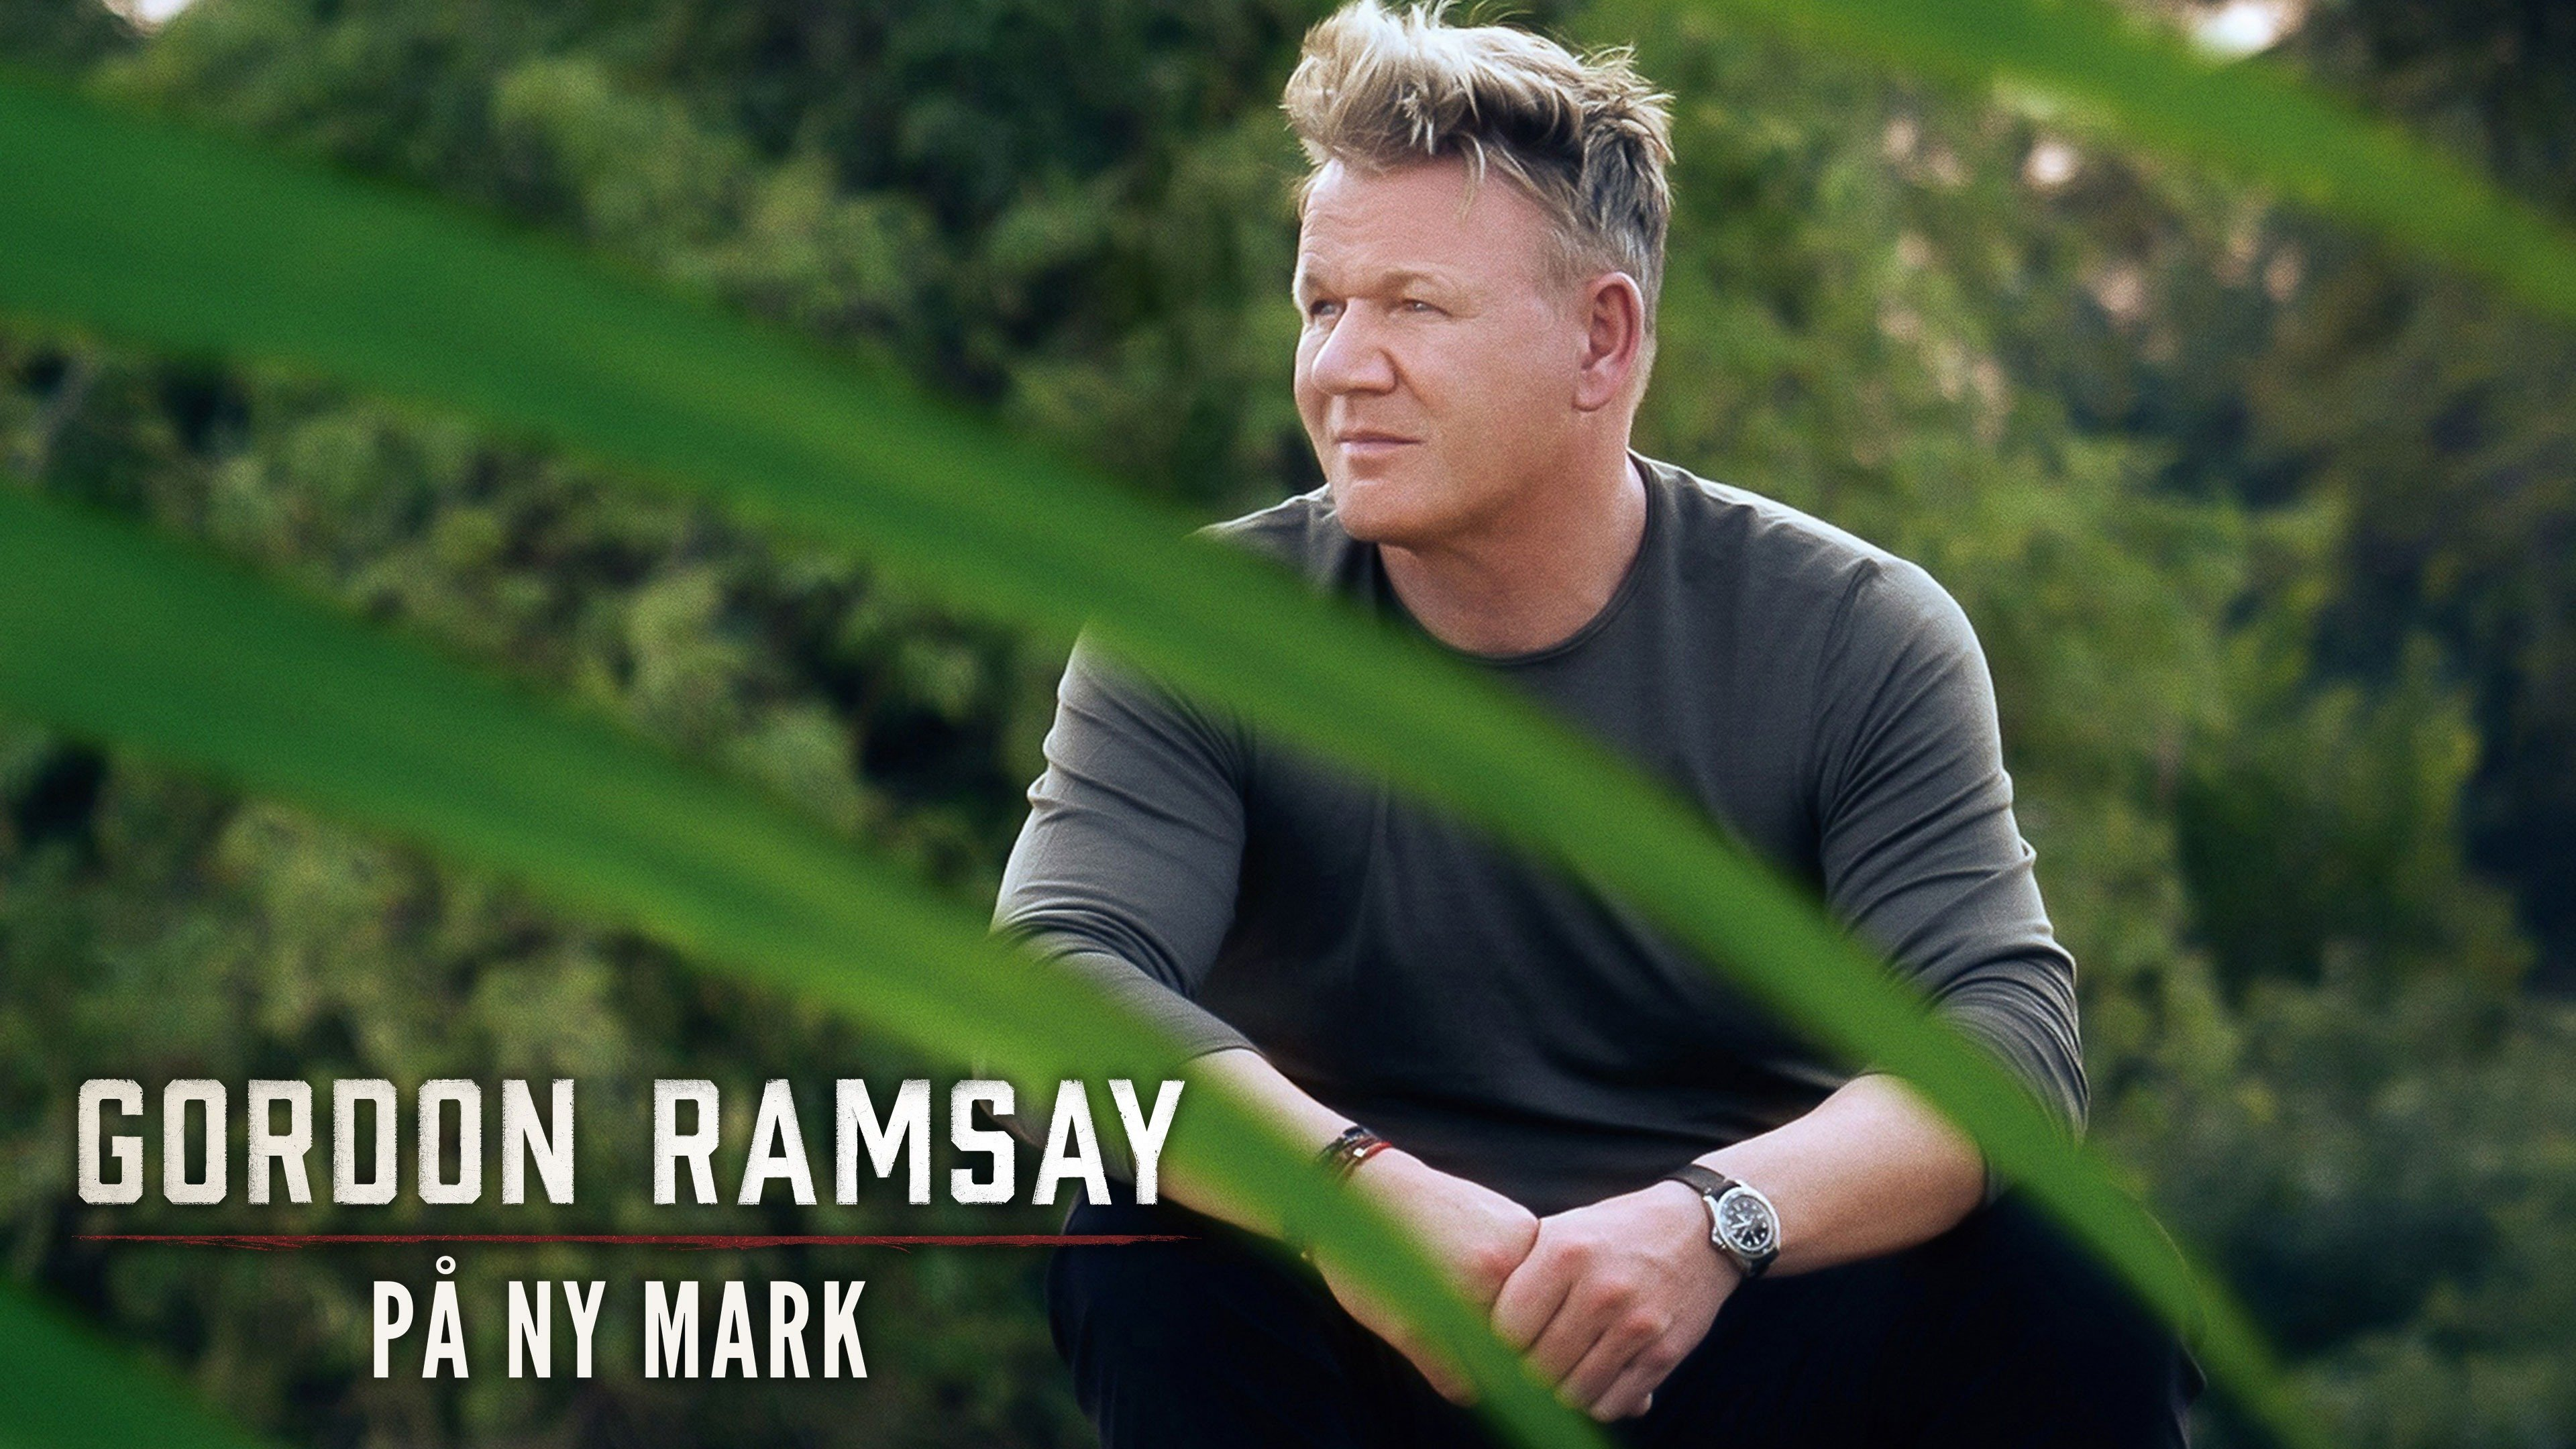 Gordon Ramsay: På ny mark